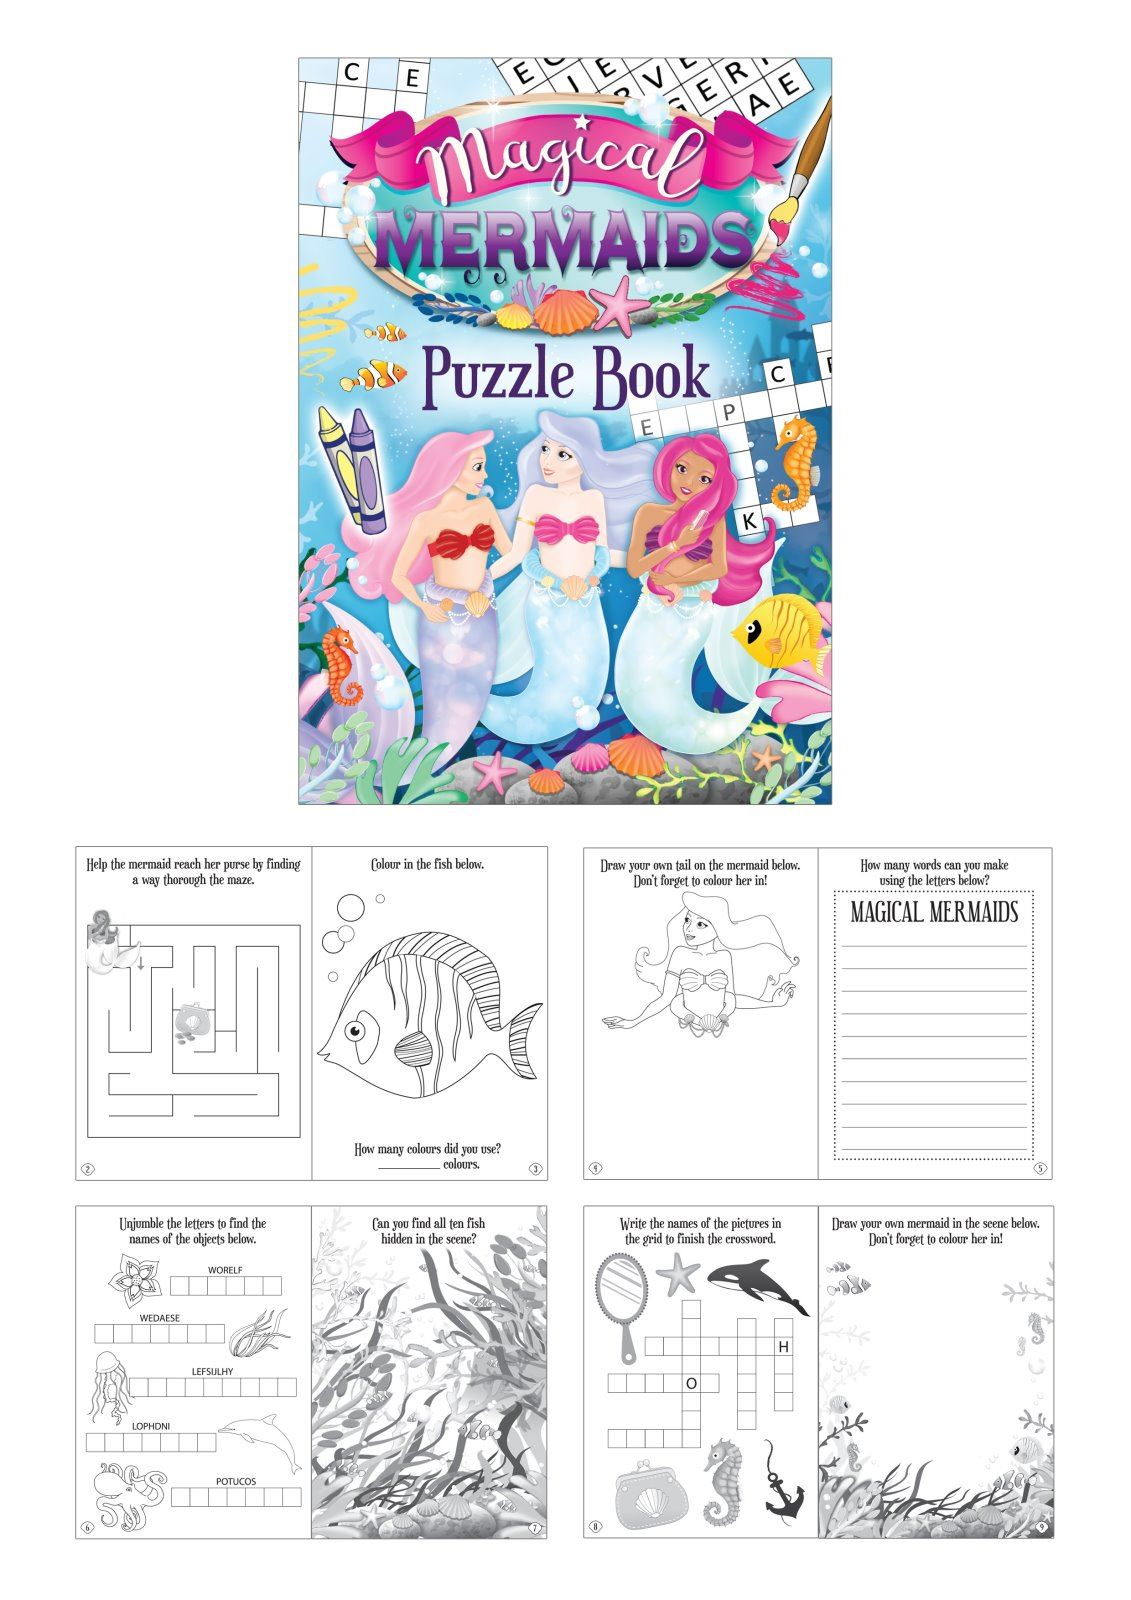 Mermaid puzzle books activities wedding favor party bag fillers A6 ...